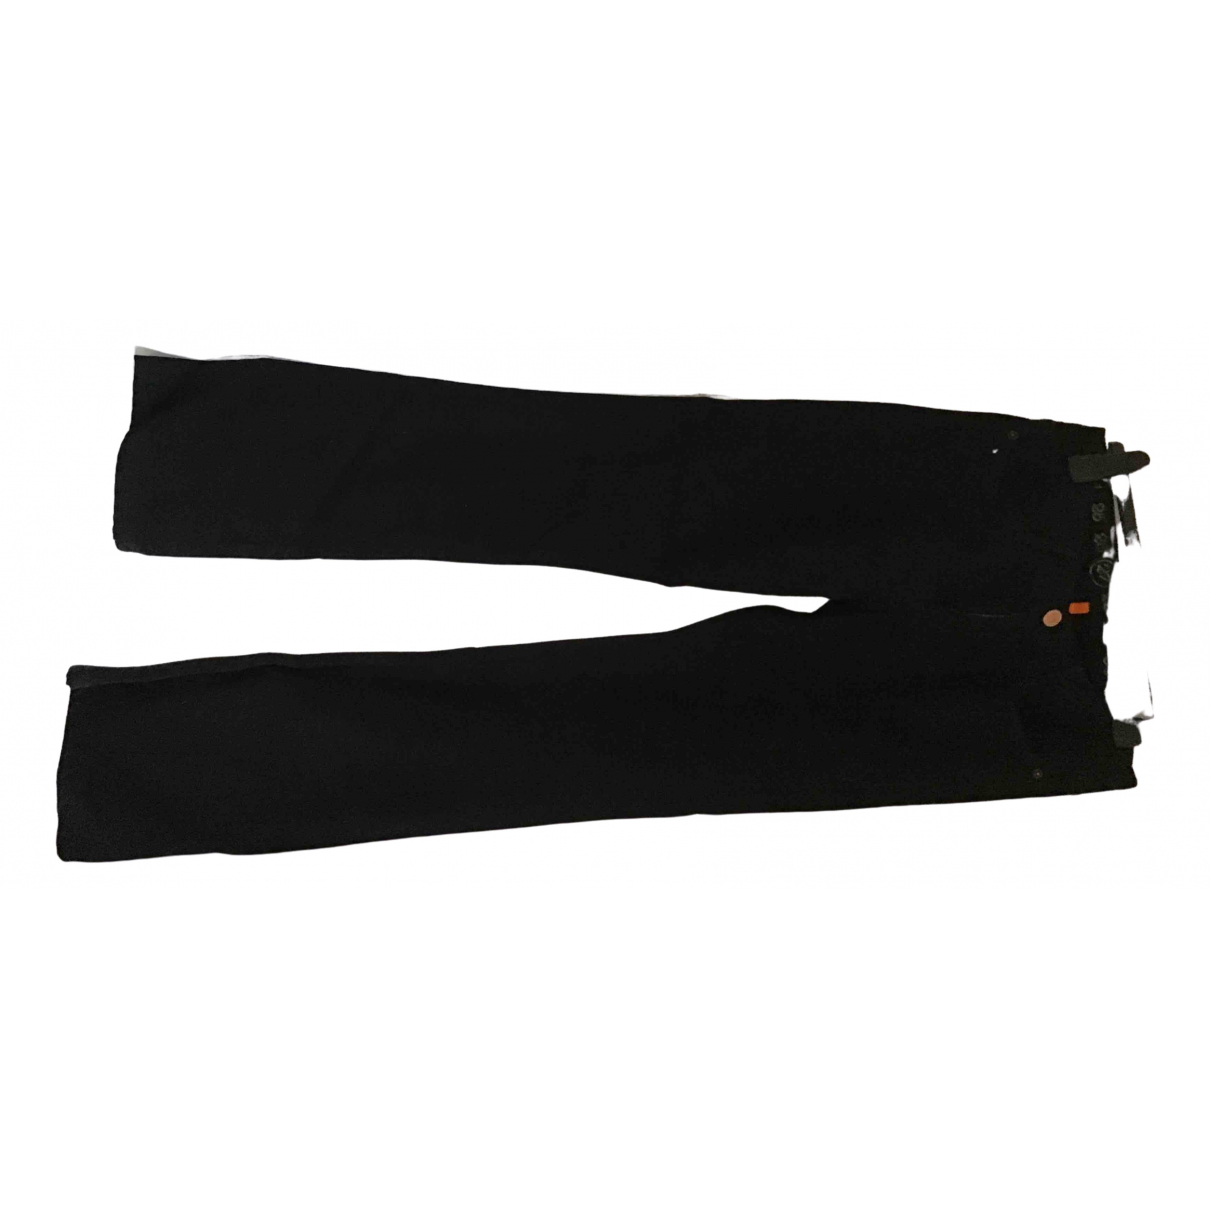 Earnest Sewn \N Black Denim - Jeans Jeans for Women 35 FR